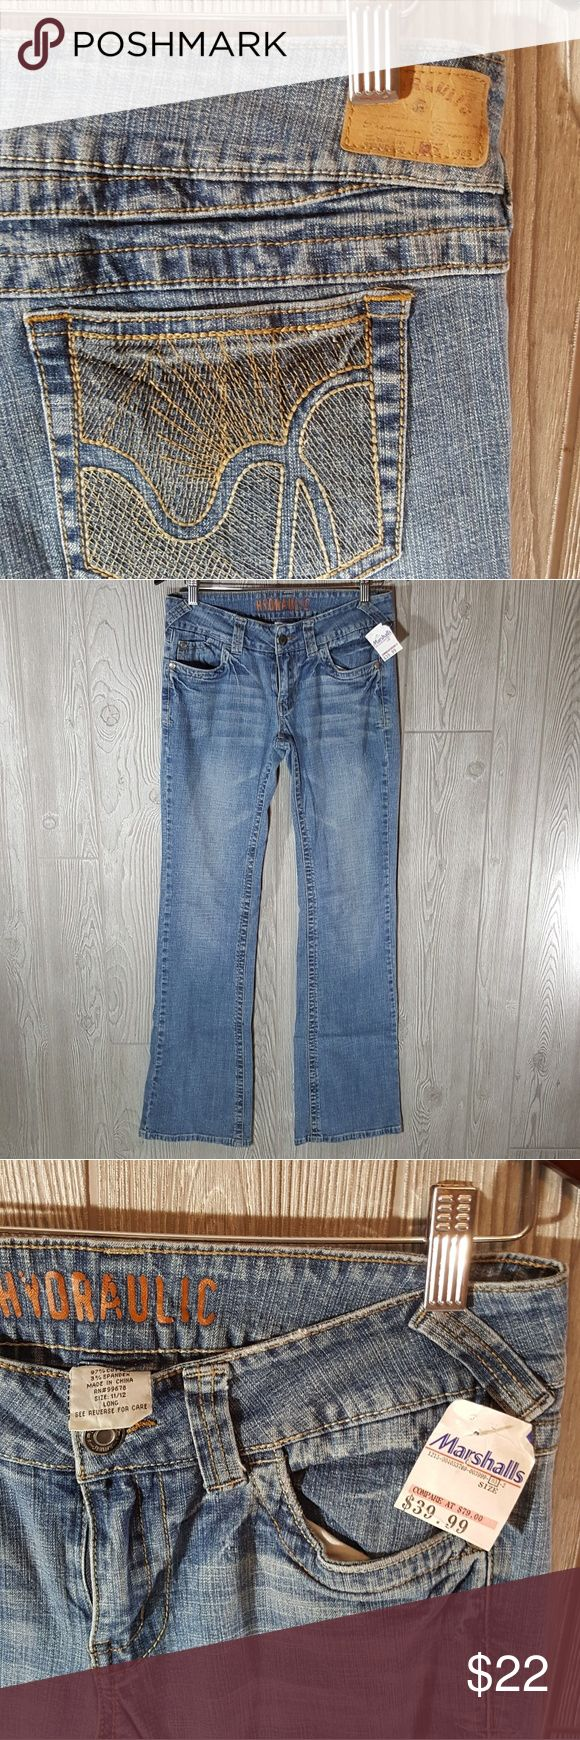 NWT hydraulic jeans 11 4/12 long Excellent condition hydraulic jeans size 11/ 12 Long. Still has tags attached. Retailed for $80 bout at marshalls for 40. Does have some stretch to them Hydraulic Jeans Boot Cut